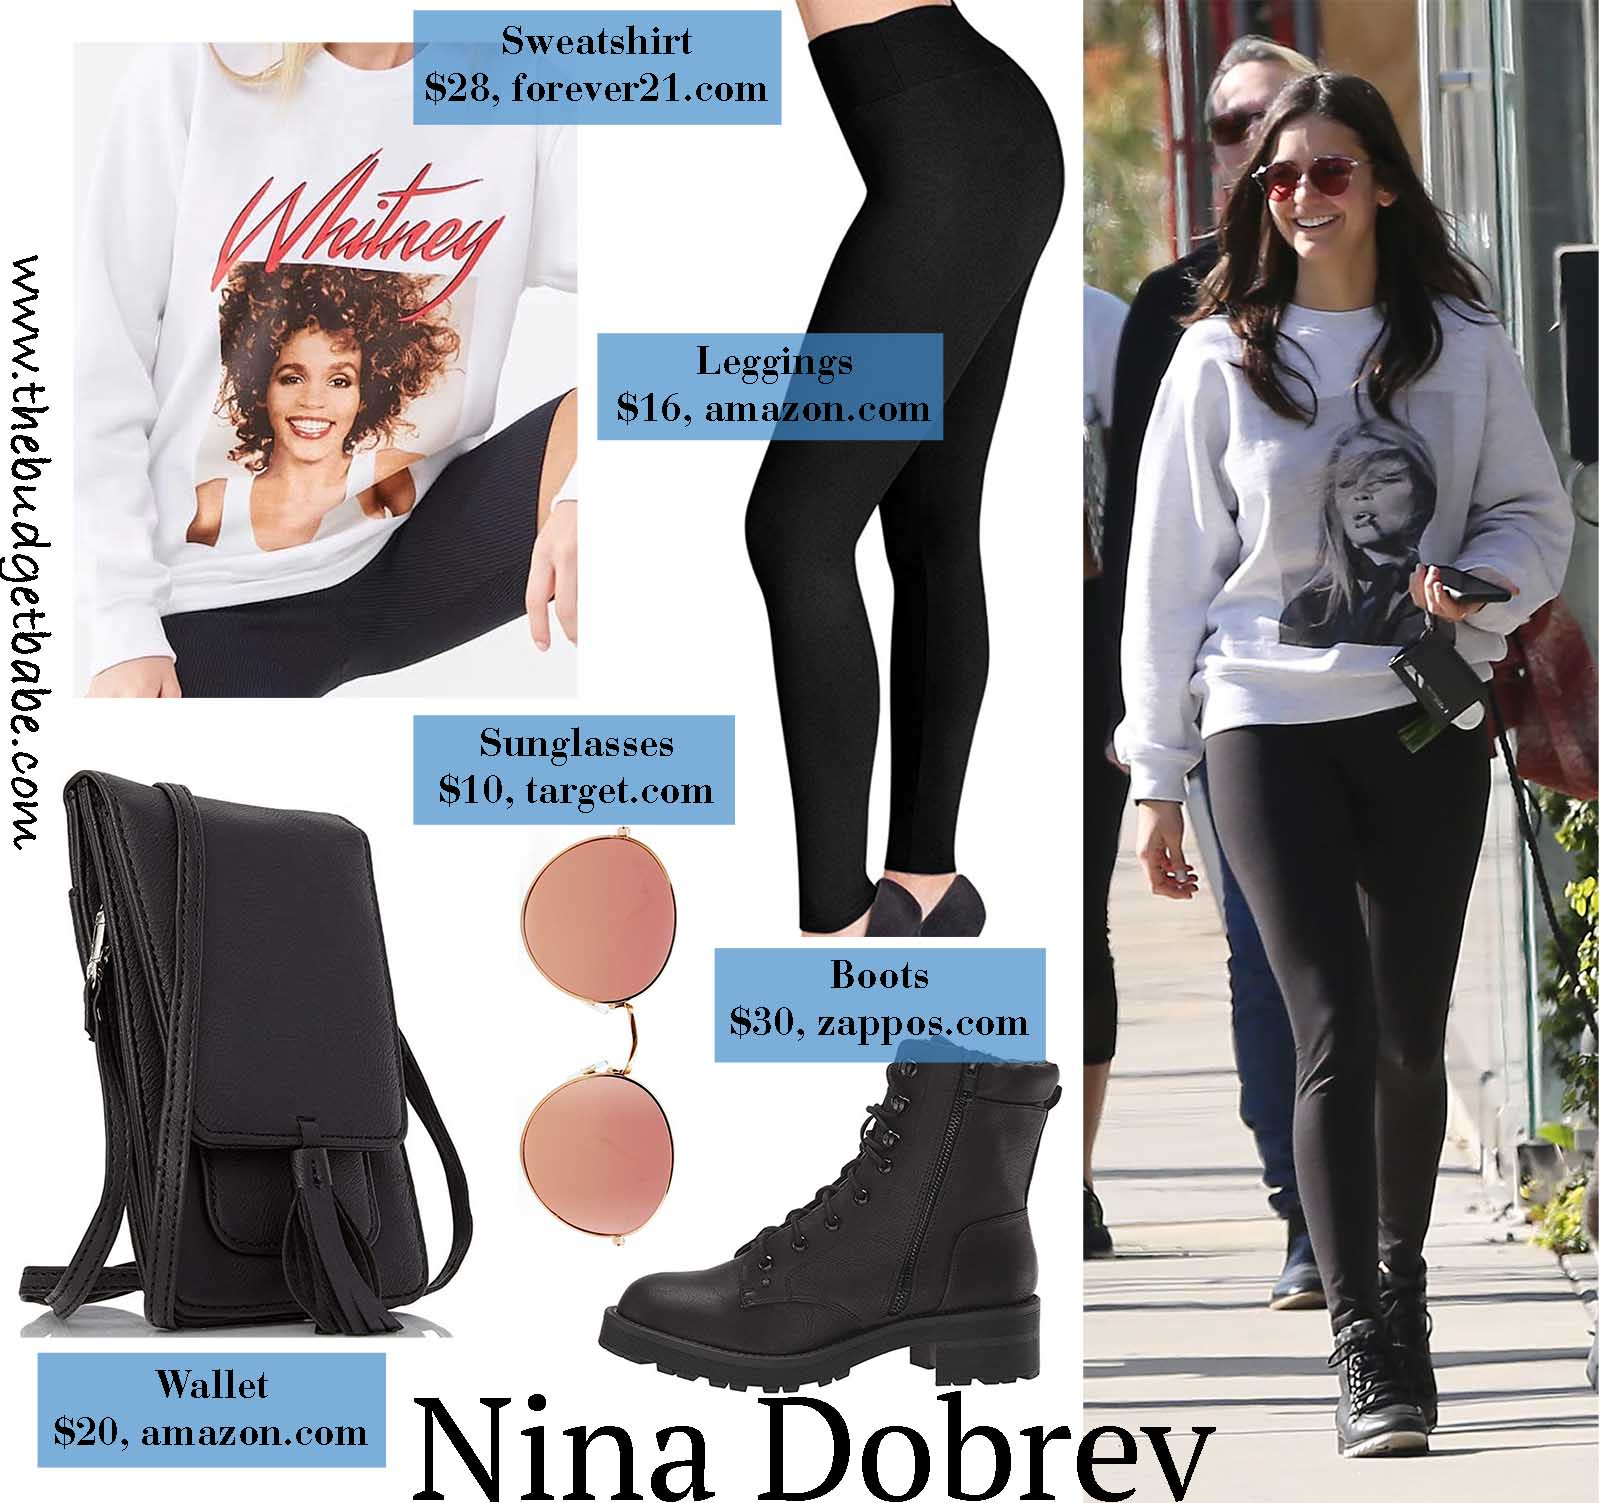 Nina Dobrev is cool girl perfection in a graphic sweatshirt!